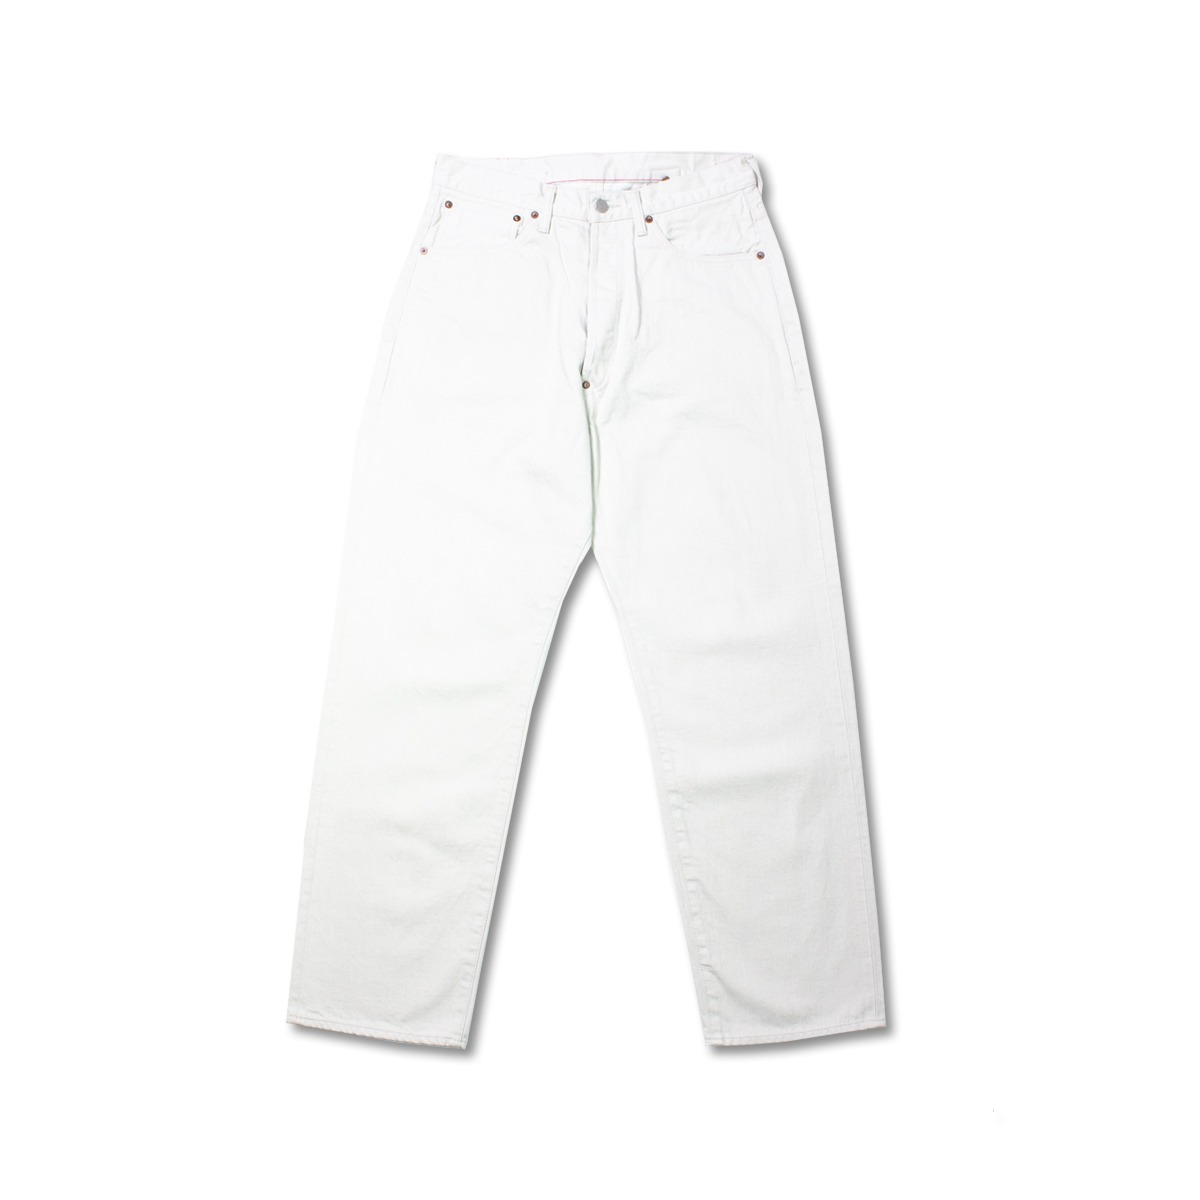 [ORDINARY FITS] 20FW NEW FARMERS 5P DENIM 'WHITE'